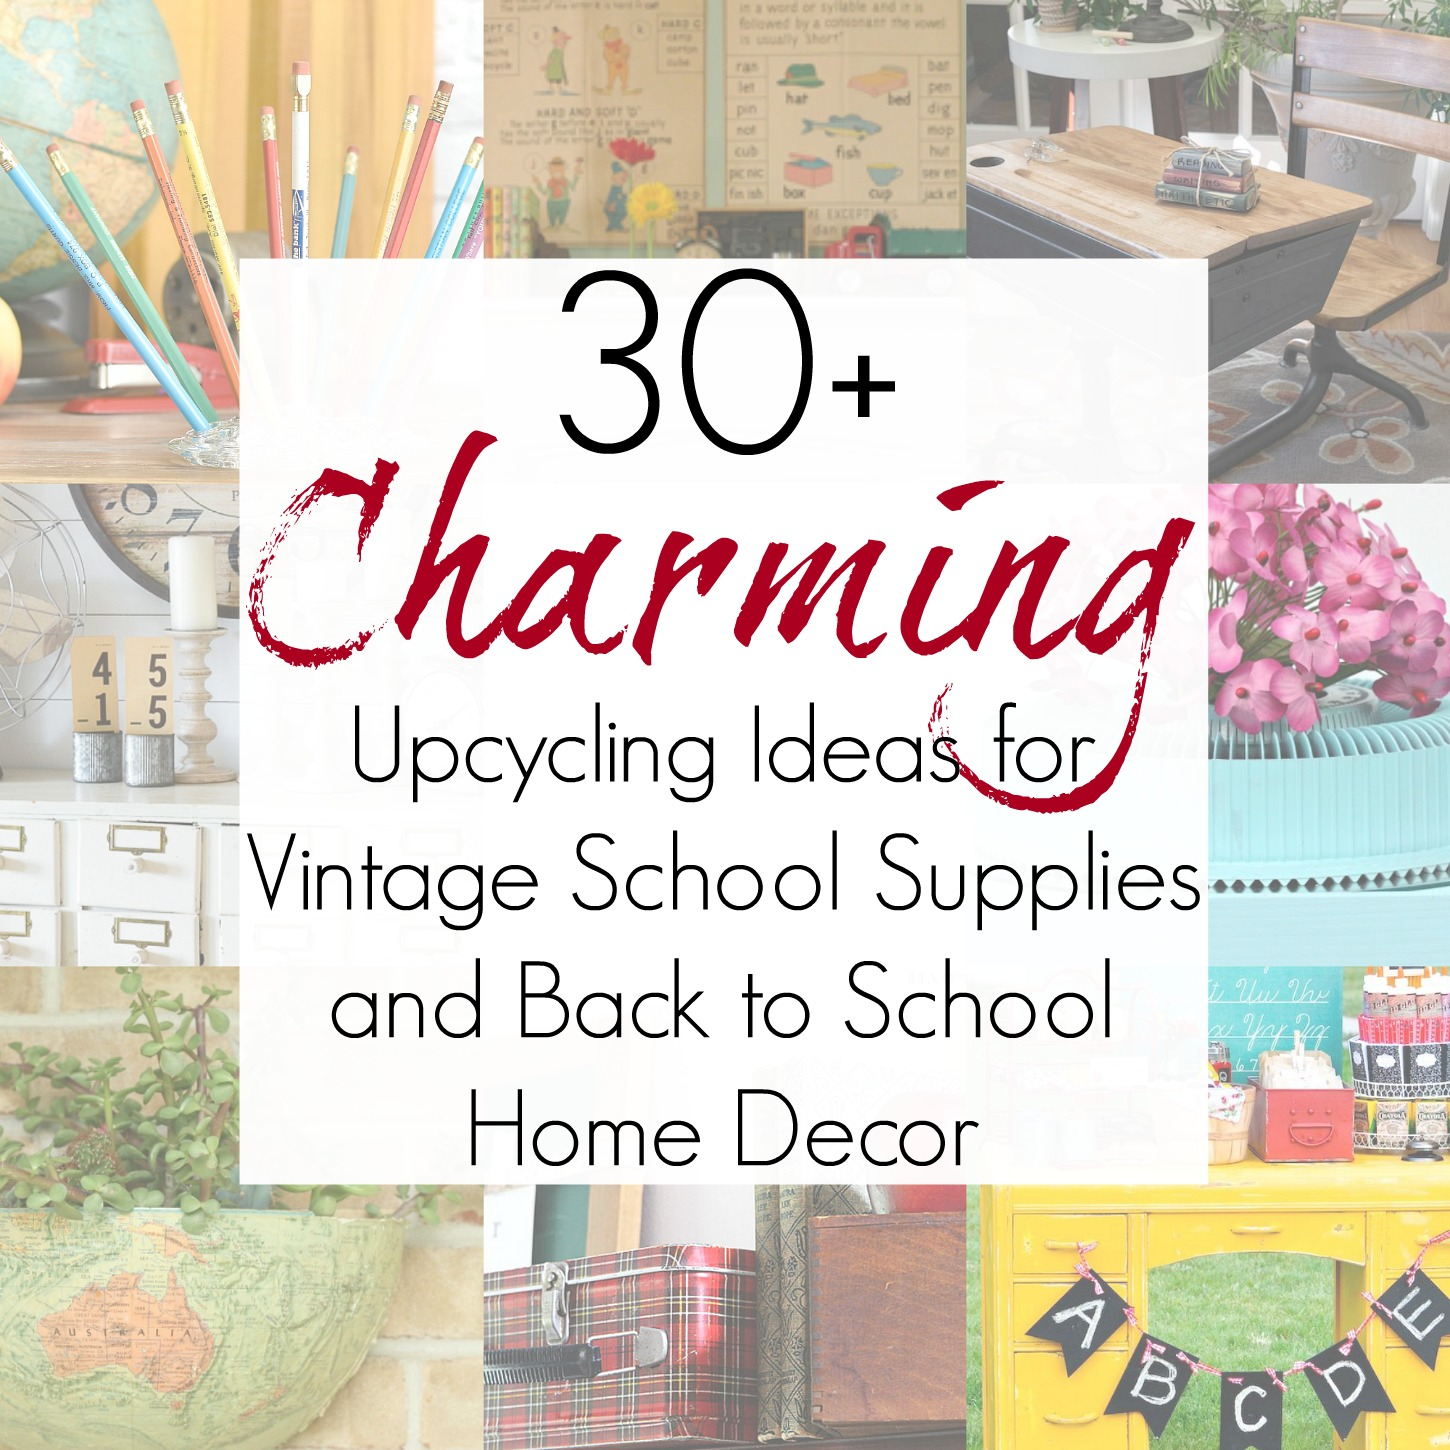 Upcycling Ideas and Repurposing Projects for Back to School Decor